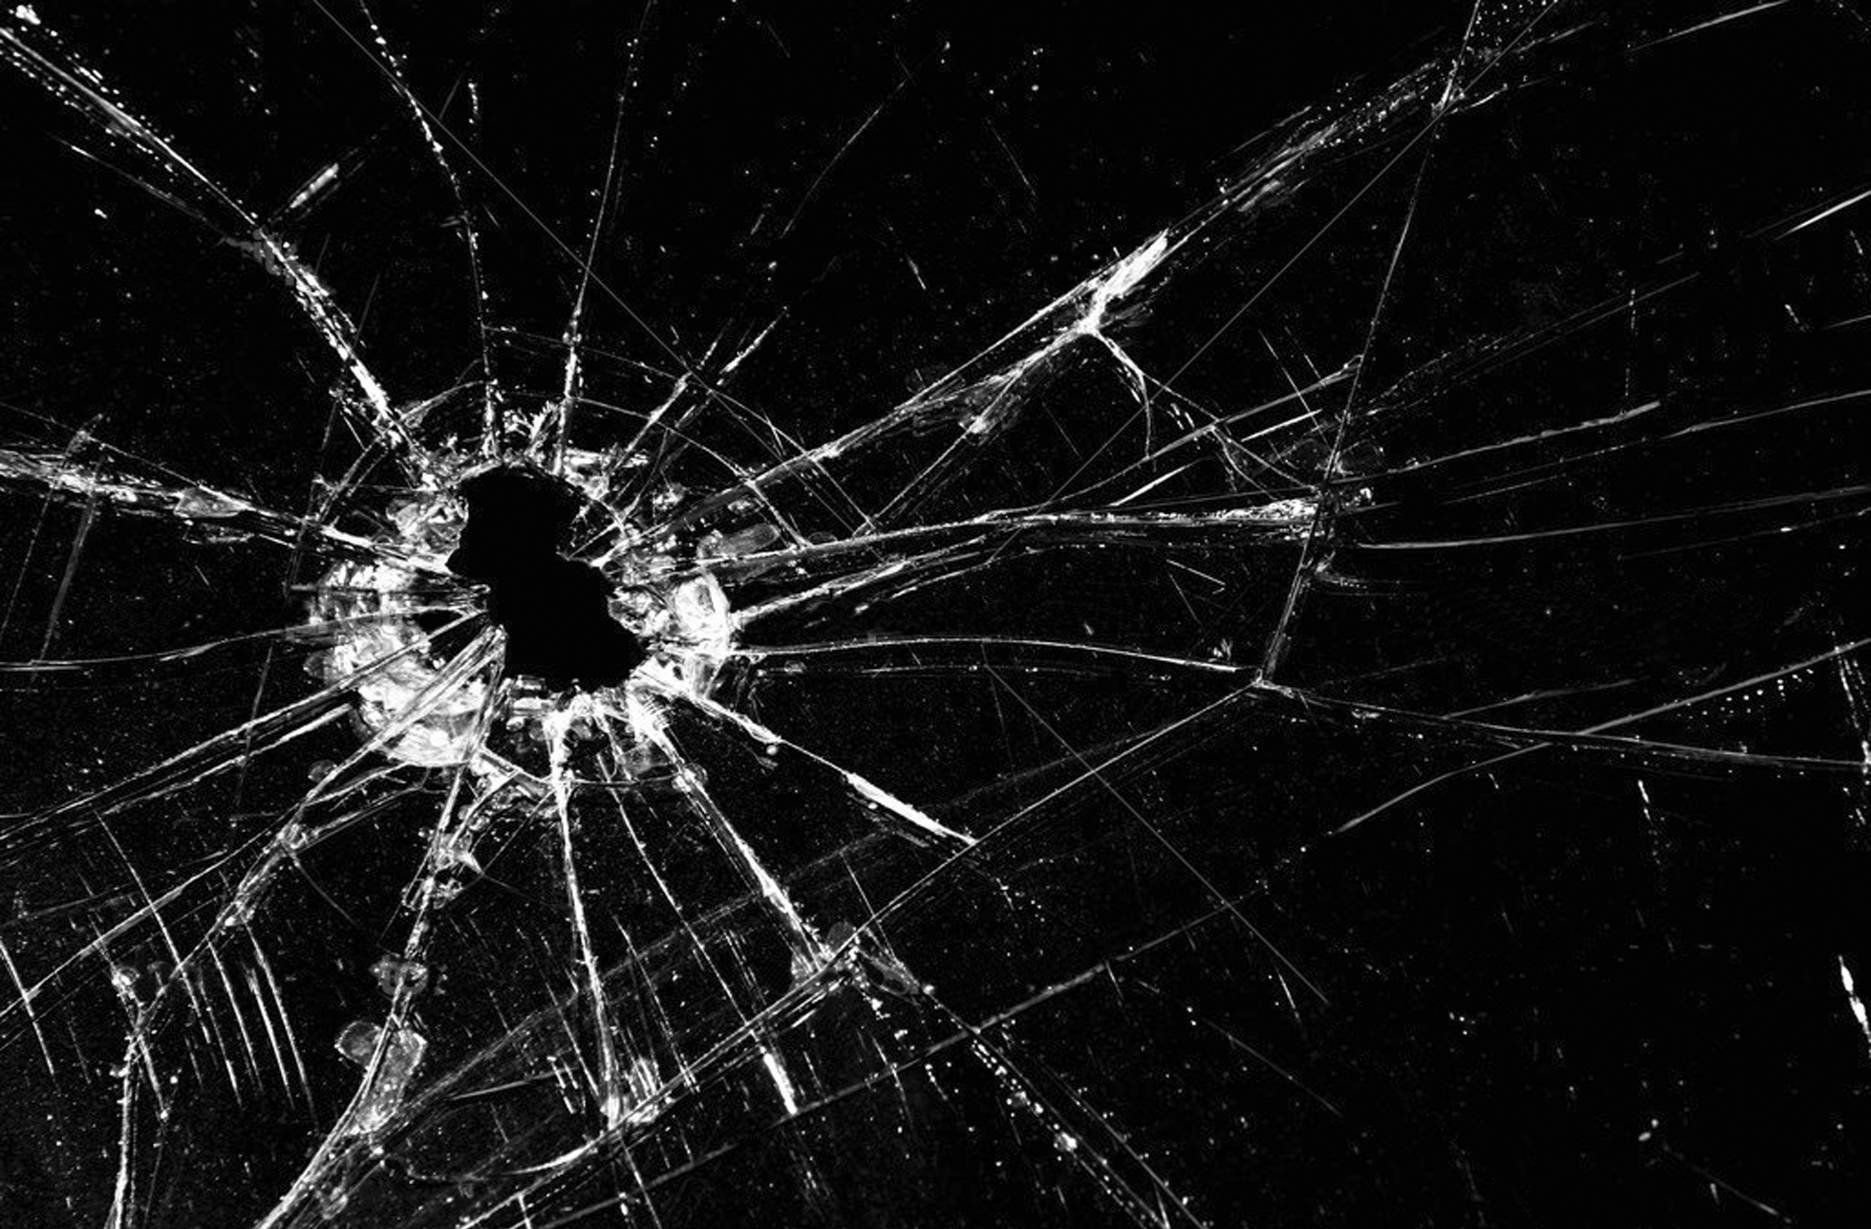 Broken Glass Wallpaper Hd | Abstract Wallpapers | Pinterest | Broken ...